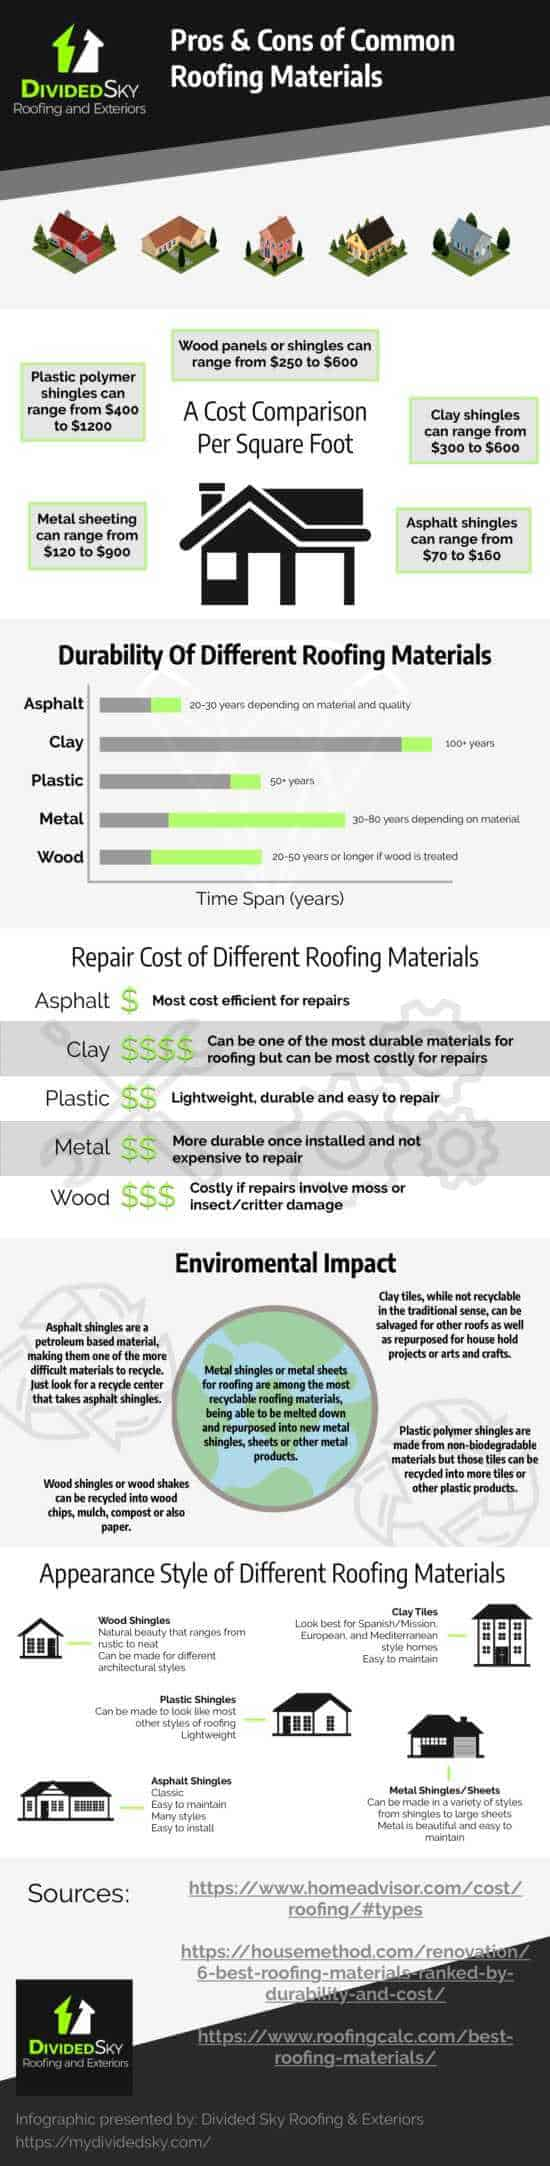 An infographic details the pros and cons of common roofing materials. Read below for a text version.